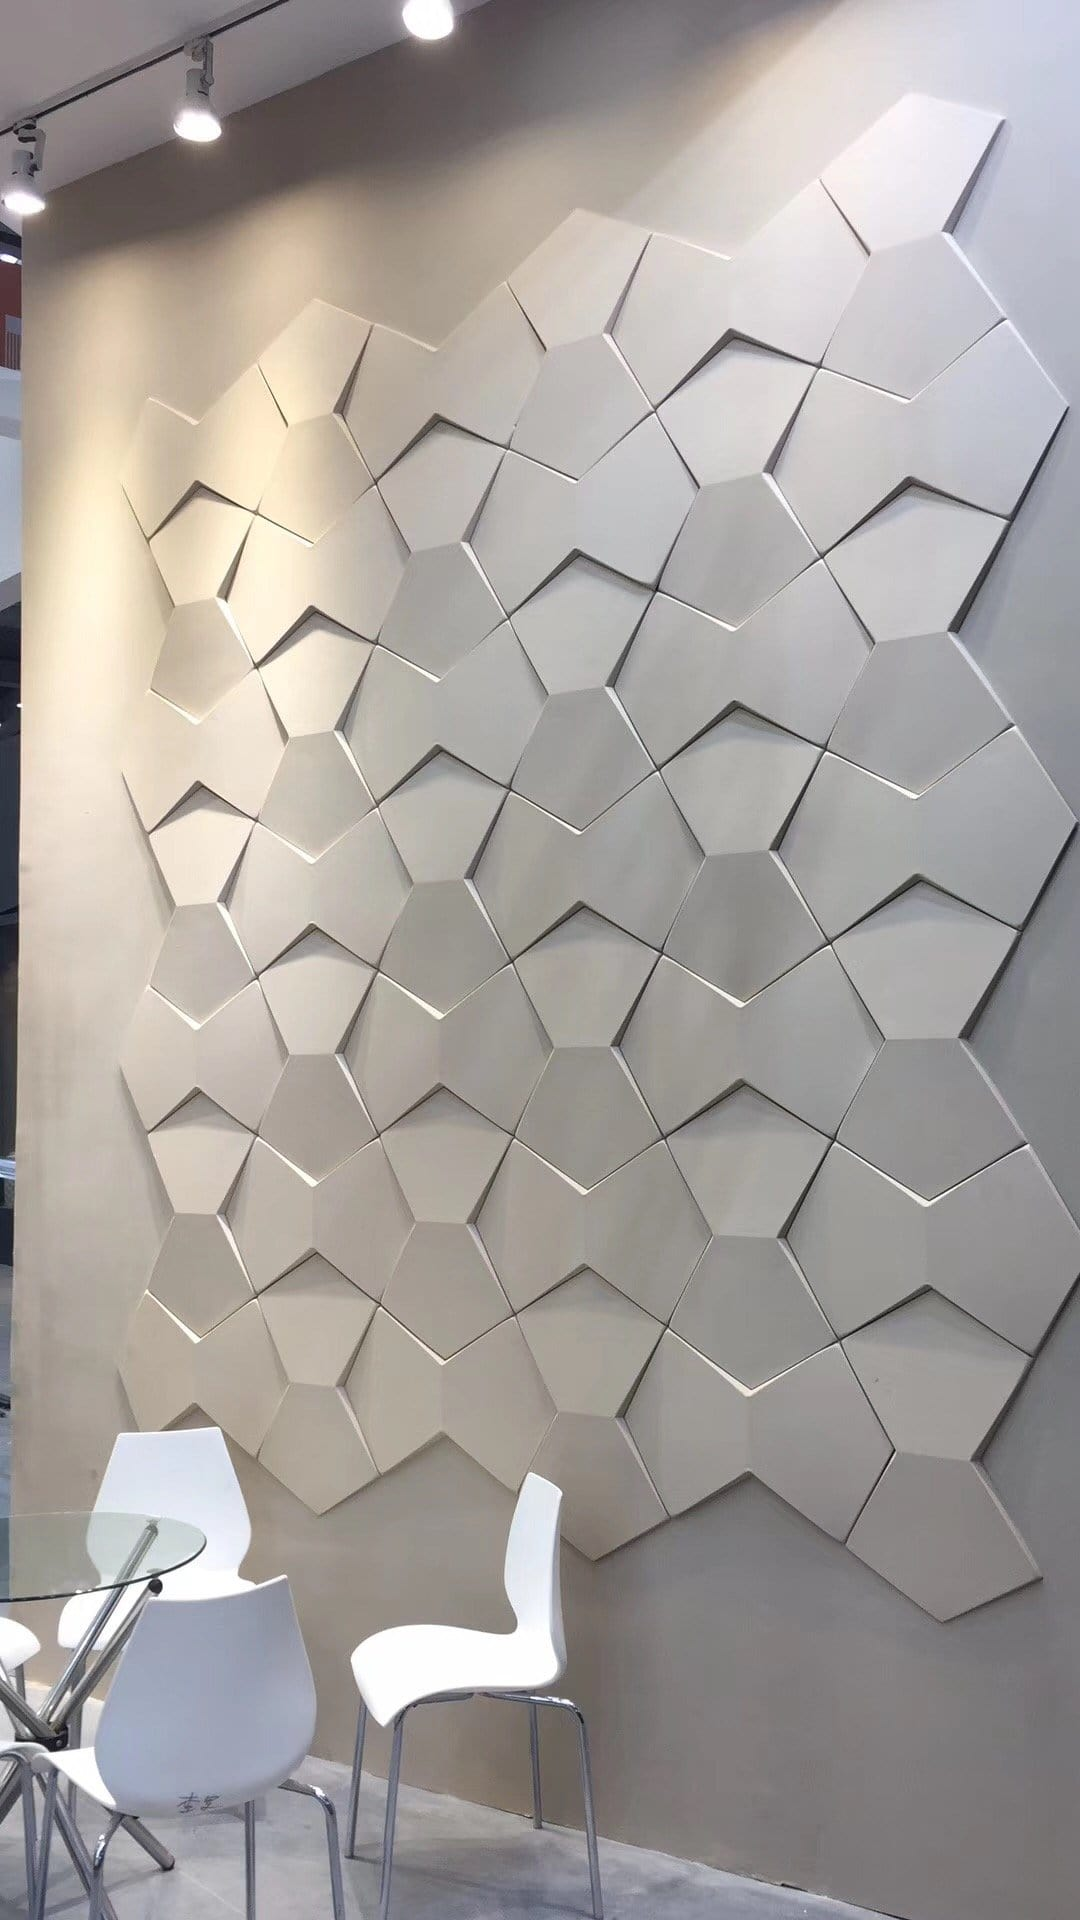 Bowtie Styled Acoustic 3D Wall Panel